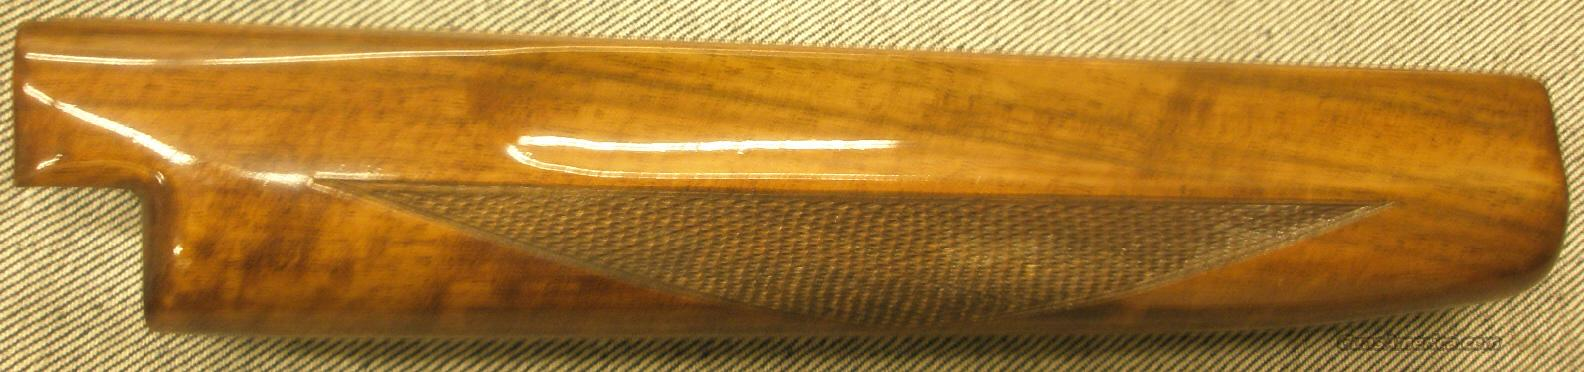 Winchester 101 Field grade 28 ga forearm  Non-Guns > Gunstocks, Grips & Wood